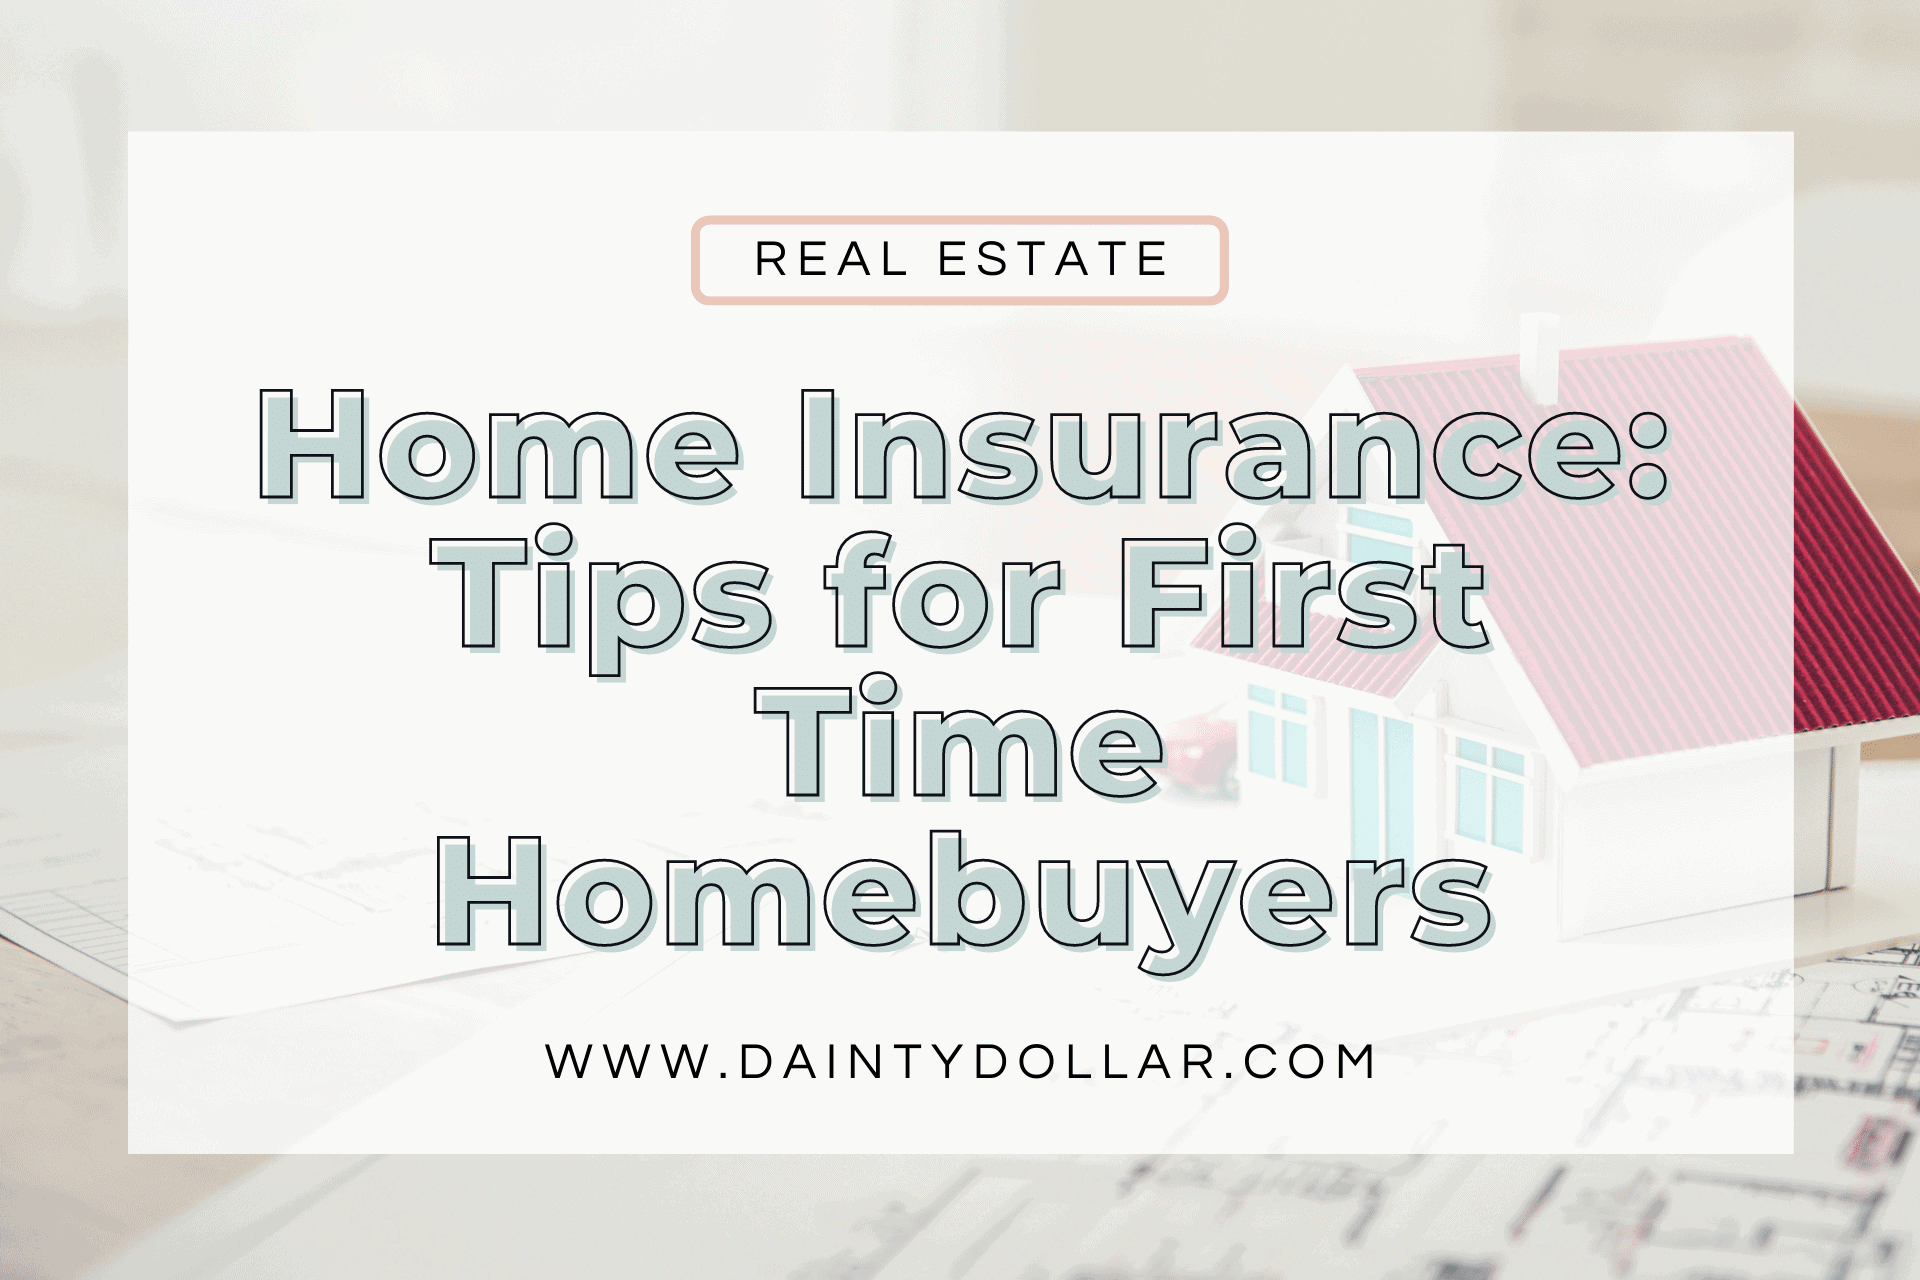 Insurance Tips for First Time Homebuyers - Dainty Dollar